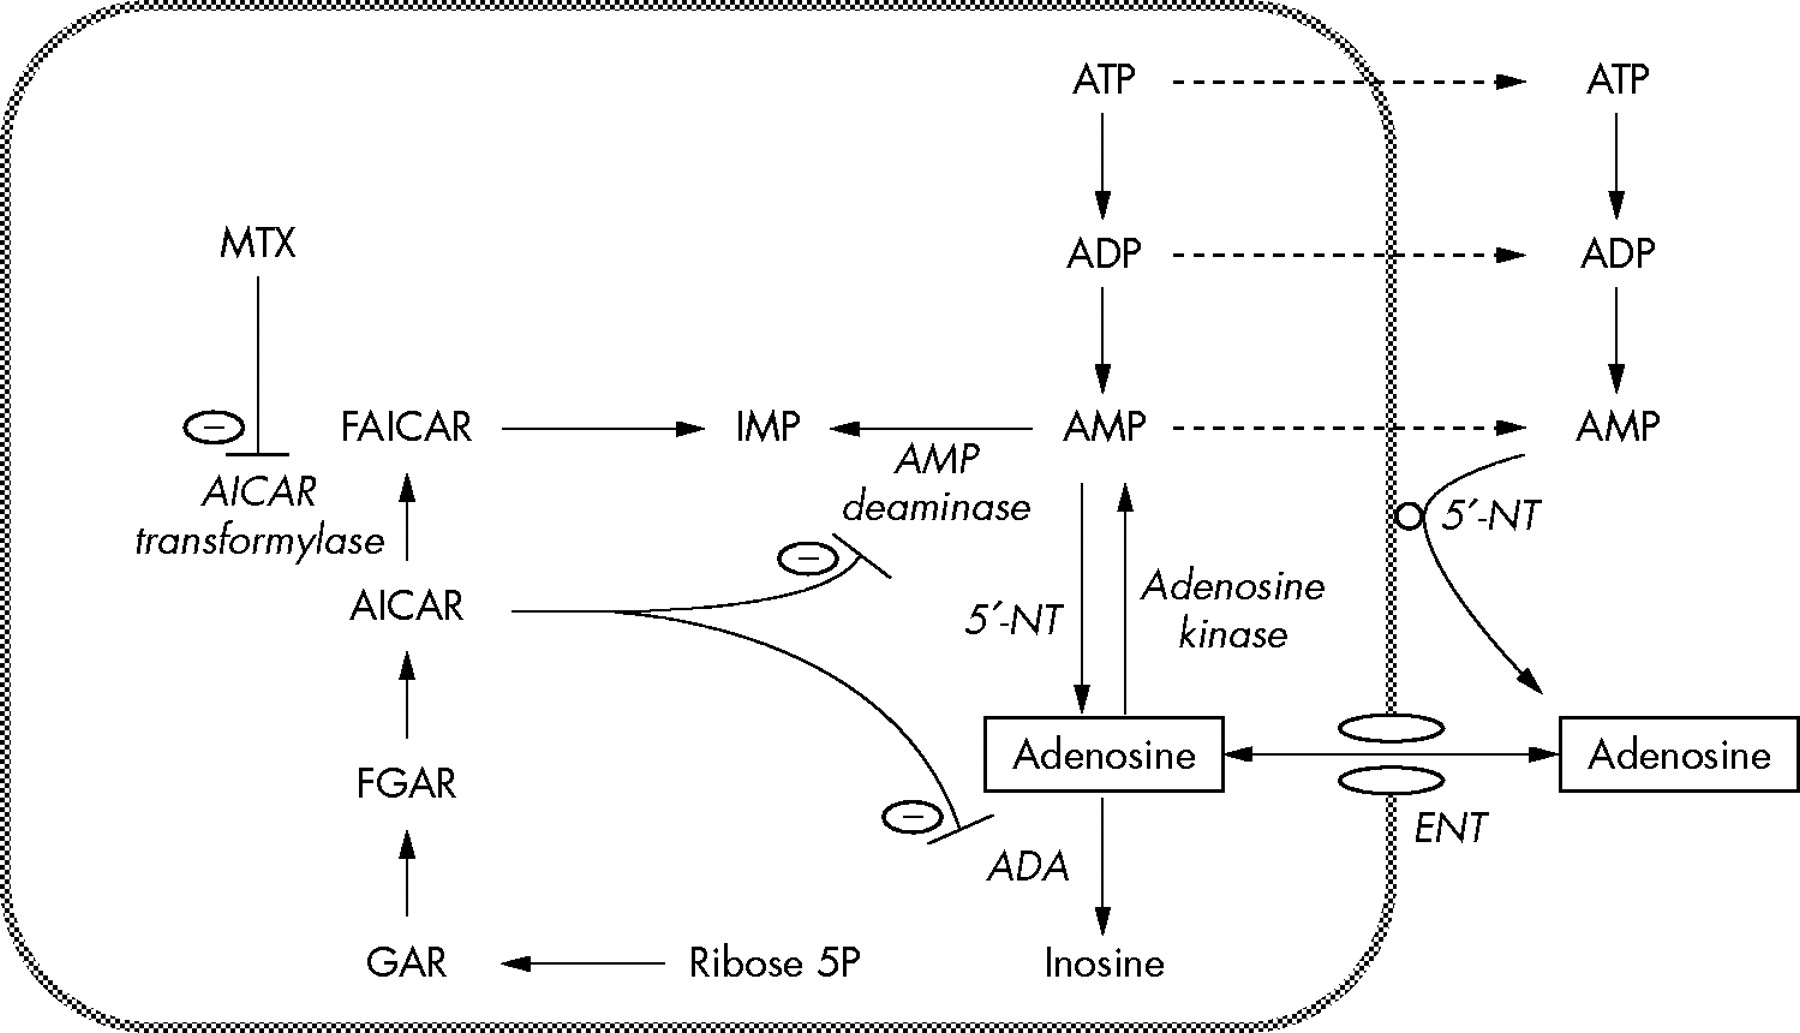 Methotrexate modulates the kinetics of adenosine in humans in vivo ...